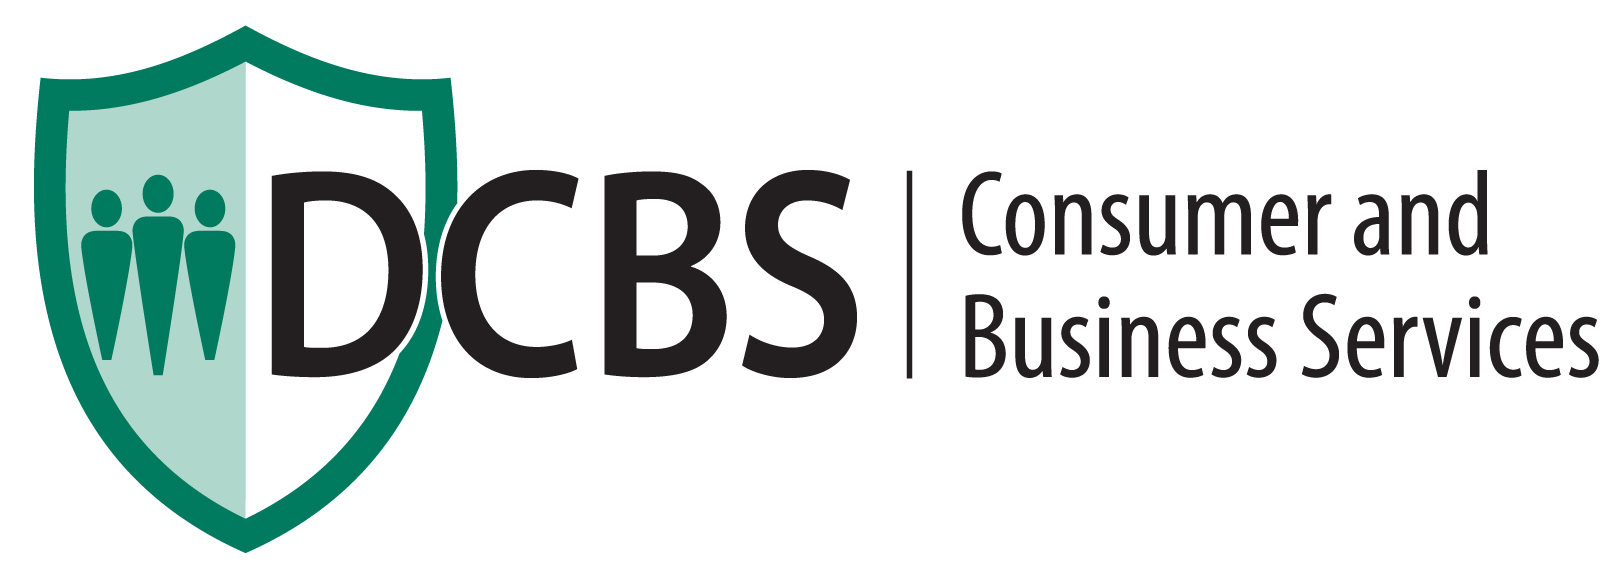 Department of Consumer and Business Services logo